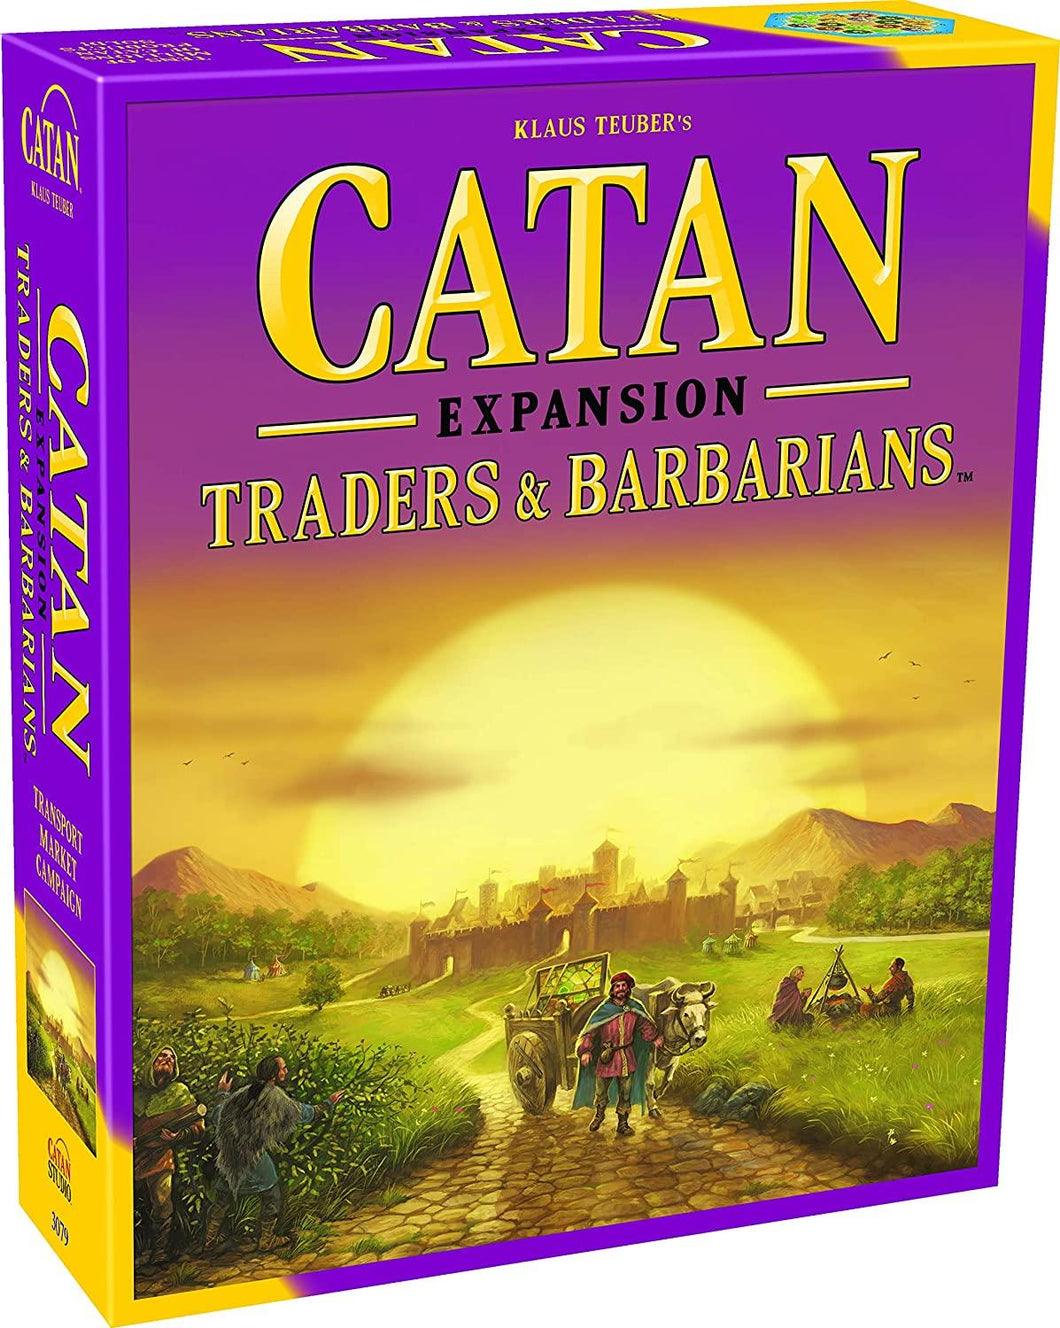 Catan - Traders and Barbarians Expansion - Roll2Learn